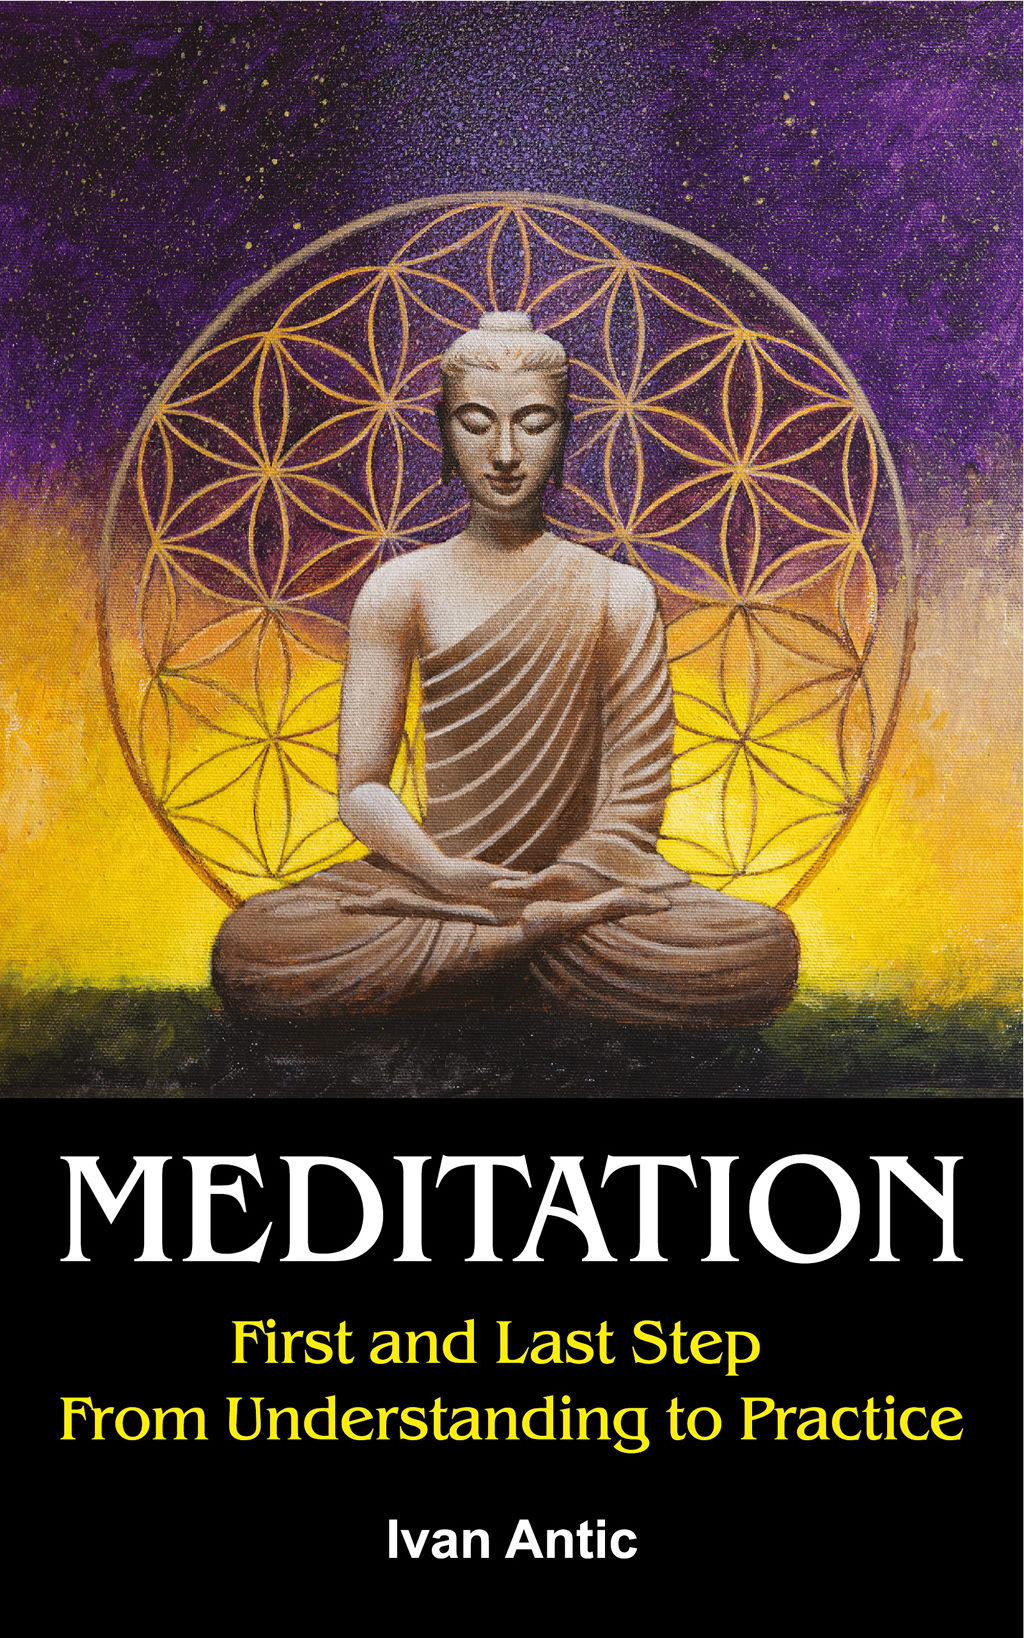 Meditation: First and Last Step – From Understanding to Practice - Book Cover